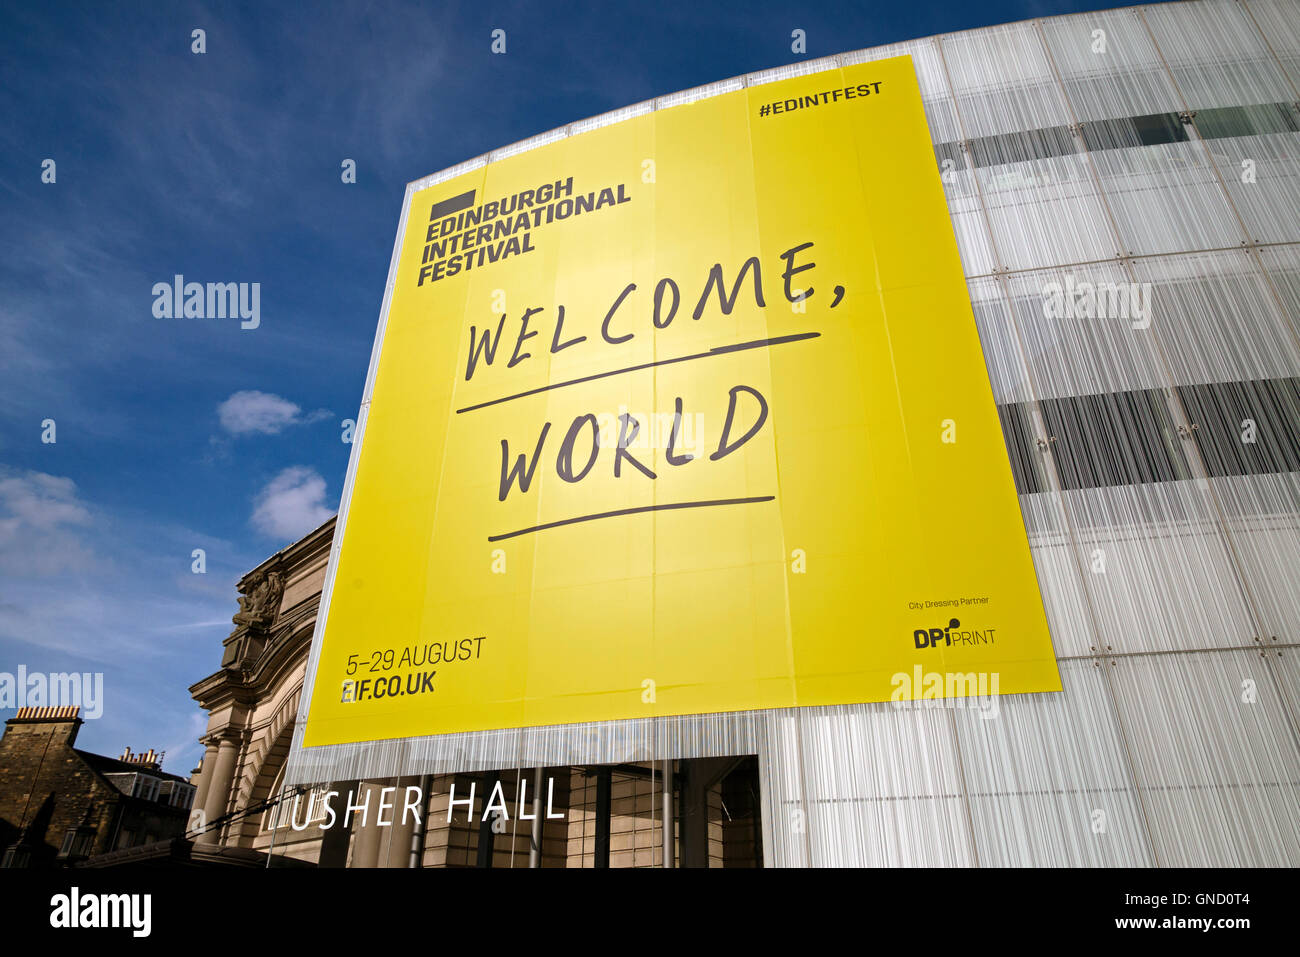 'Welcome World' sign on the Usher Hall during the Edinburgh International Festival. - Stock Image